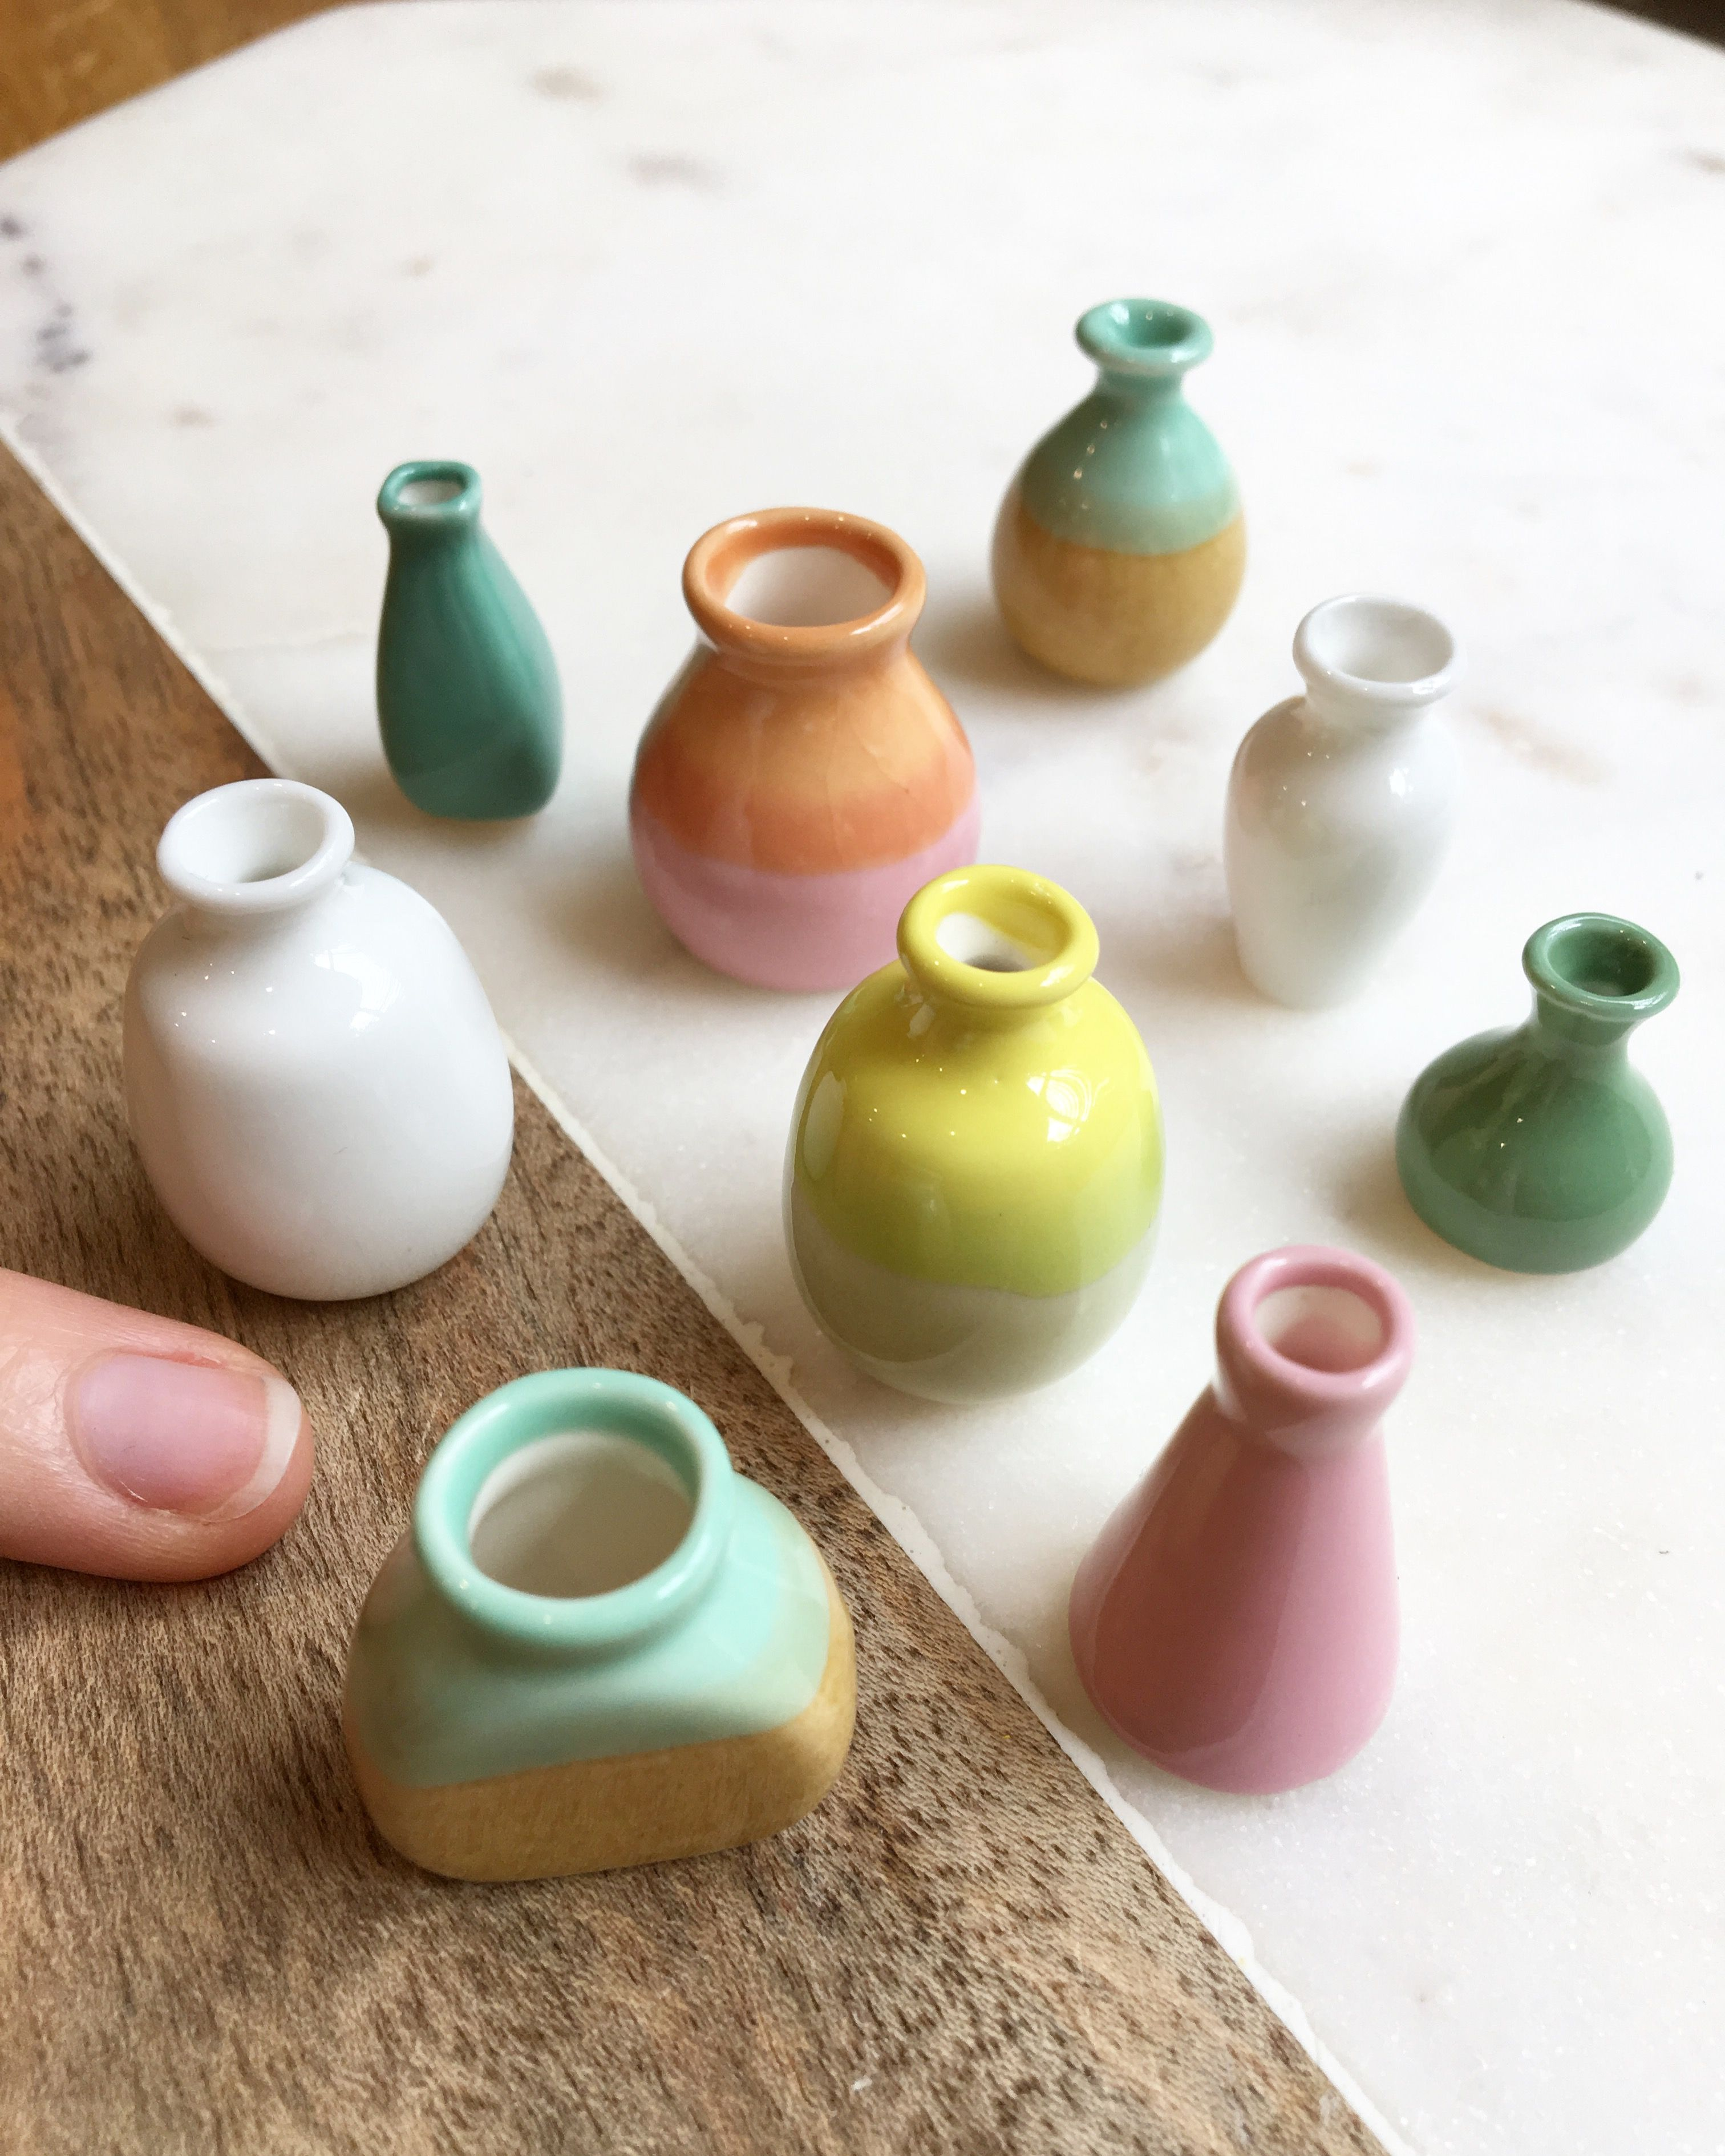 Pin By Tj T On Miniature Co Accessories Miniature Pottery Dollhouse Miniatures Kitchen Mini Vase